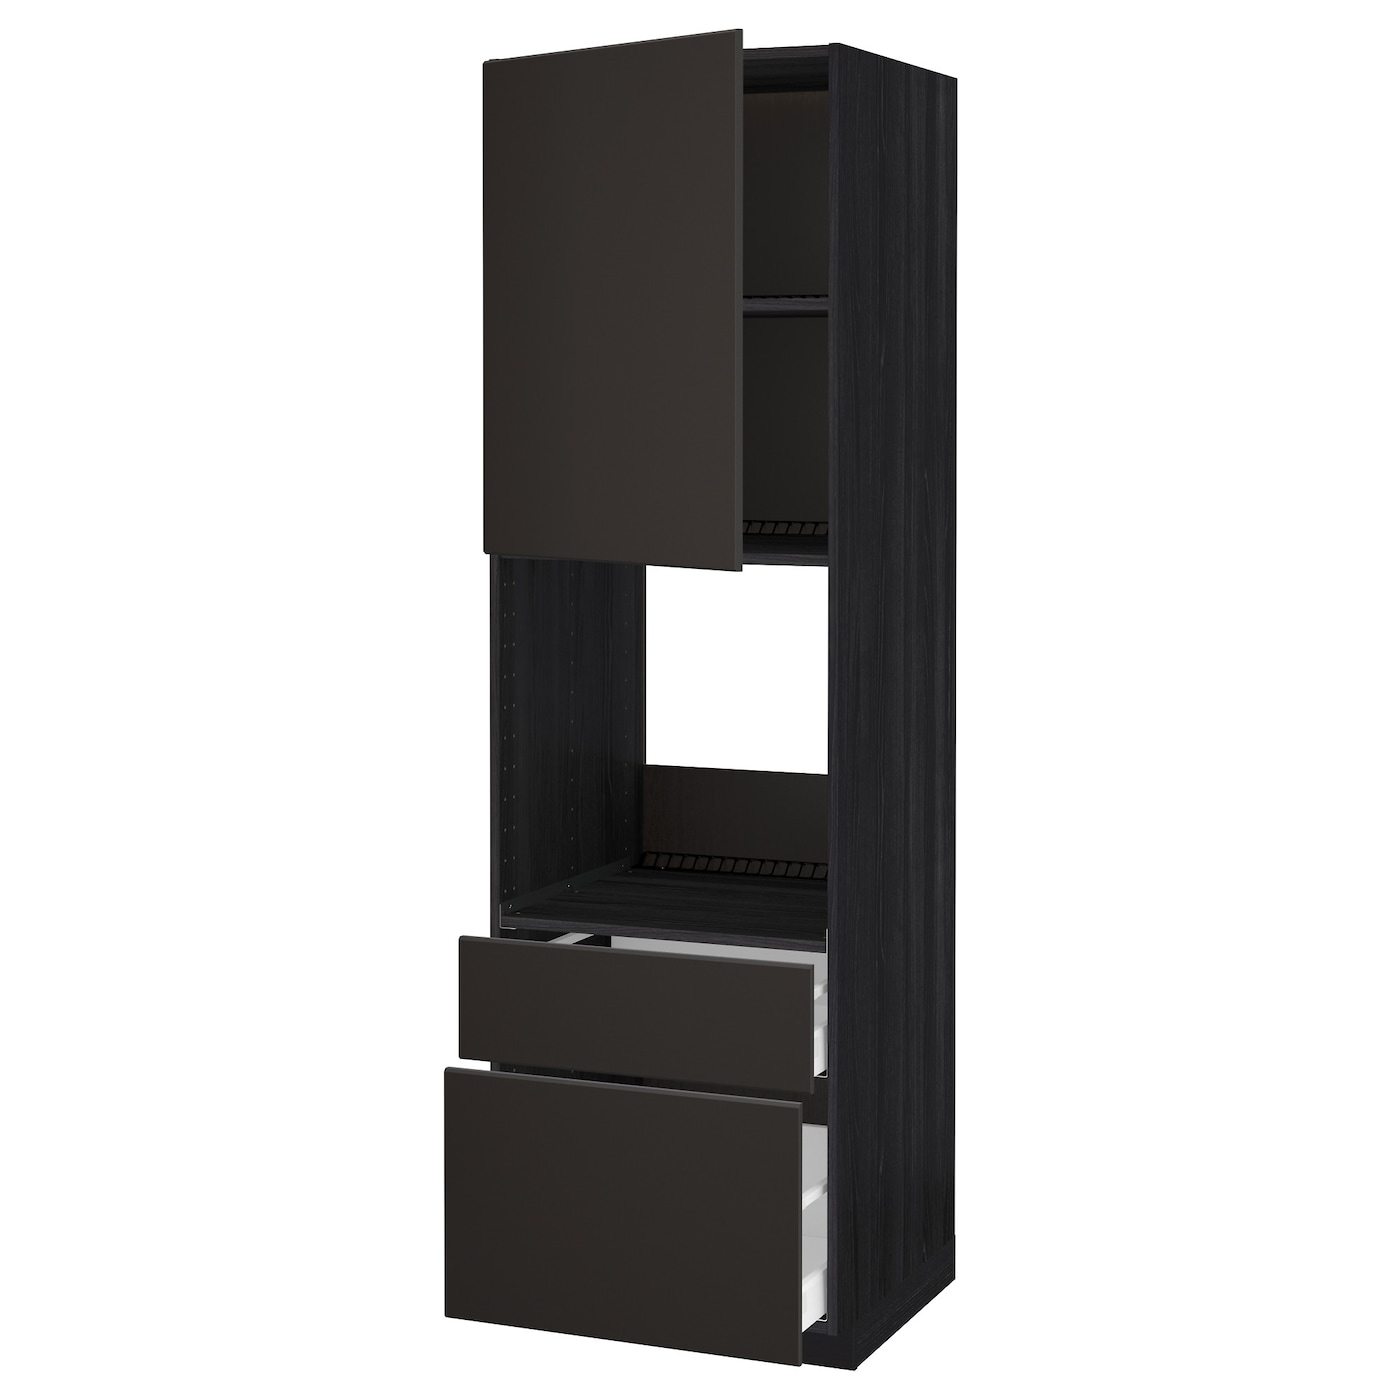 metod maximera high cabinet f oven door 2 drawers black kungsbacka anthracite 60 x 60 x 200 cm. Black Bedroom Furniture Sets. Home Design Ideas